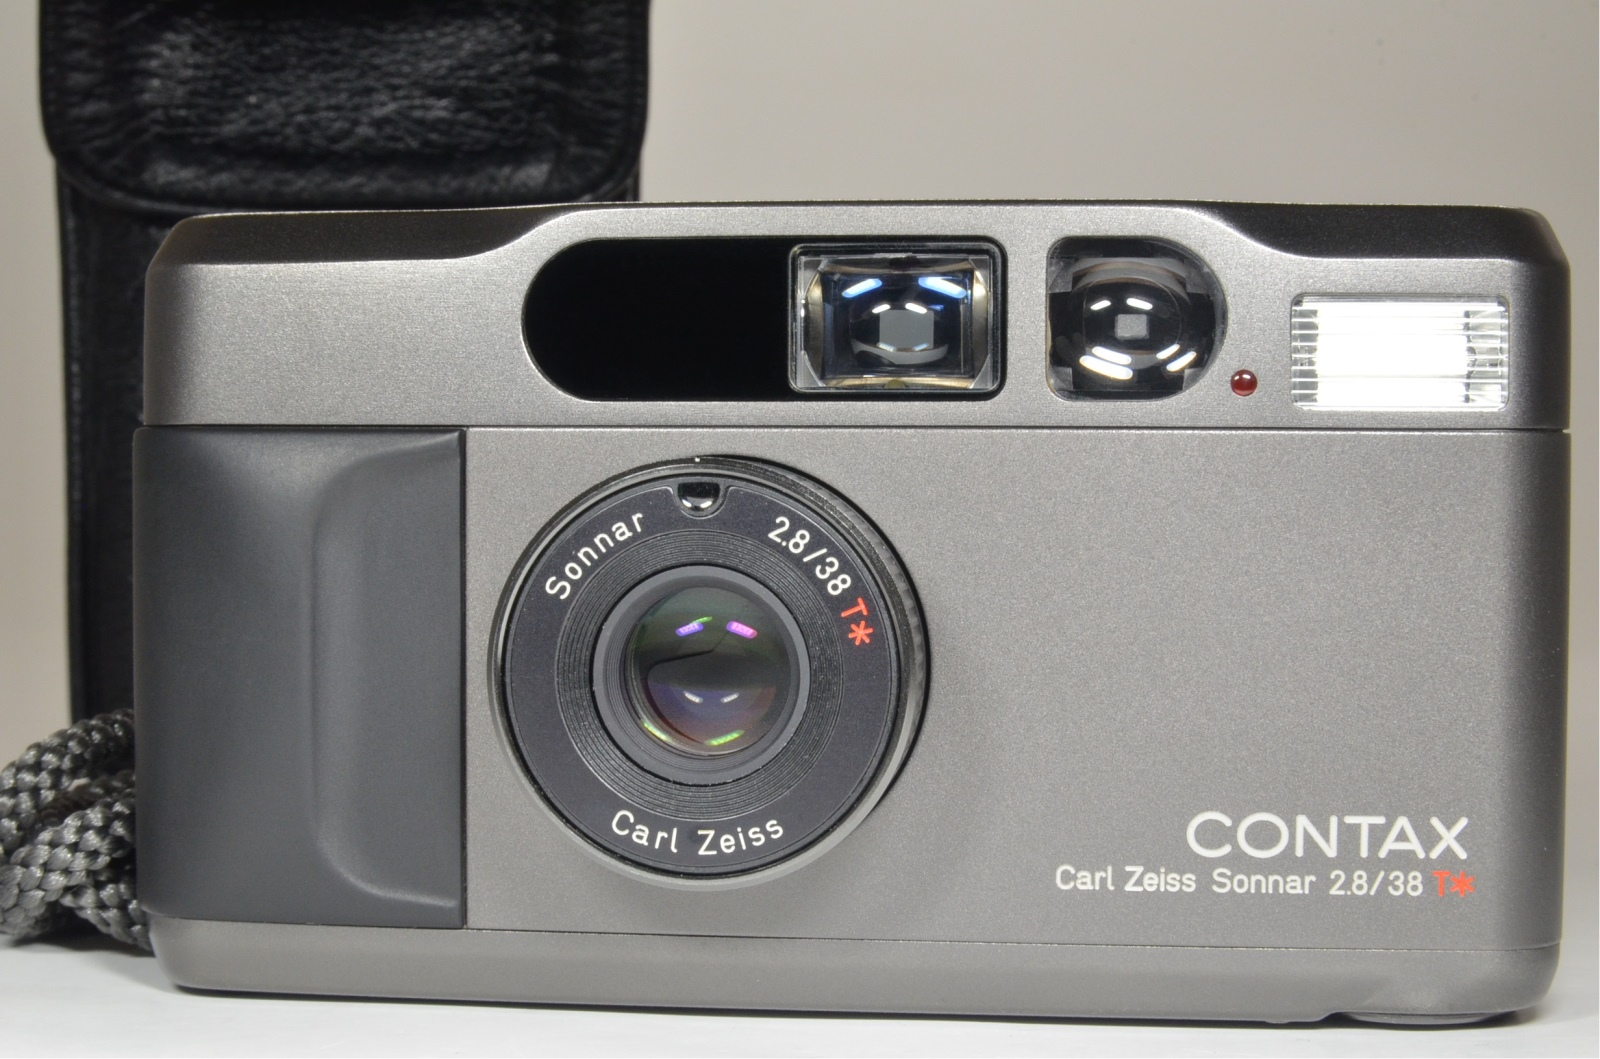 contax t2 data back titanium black p&s 35mm film camera